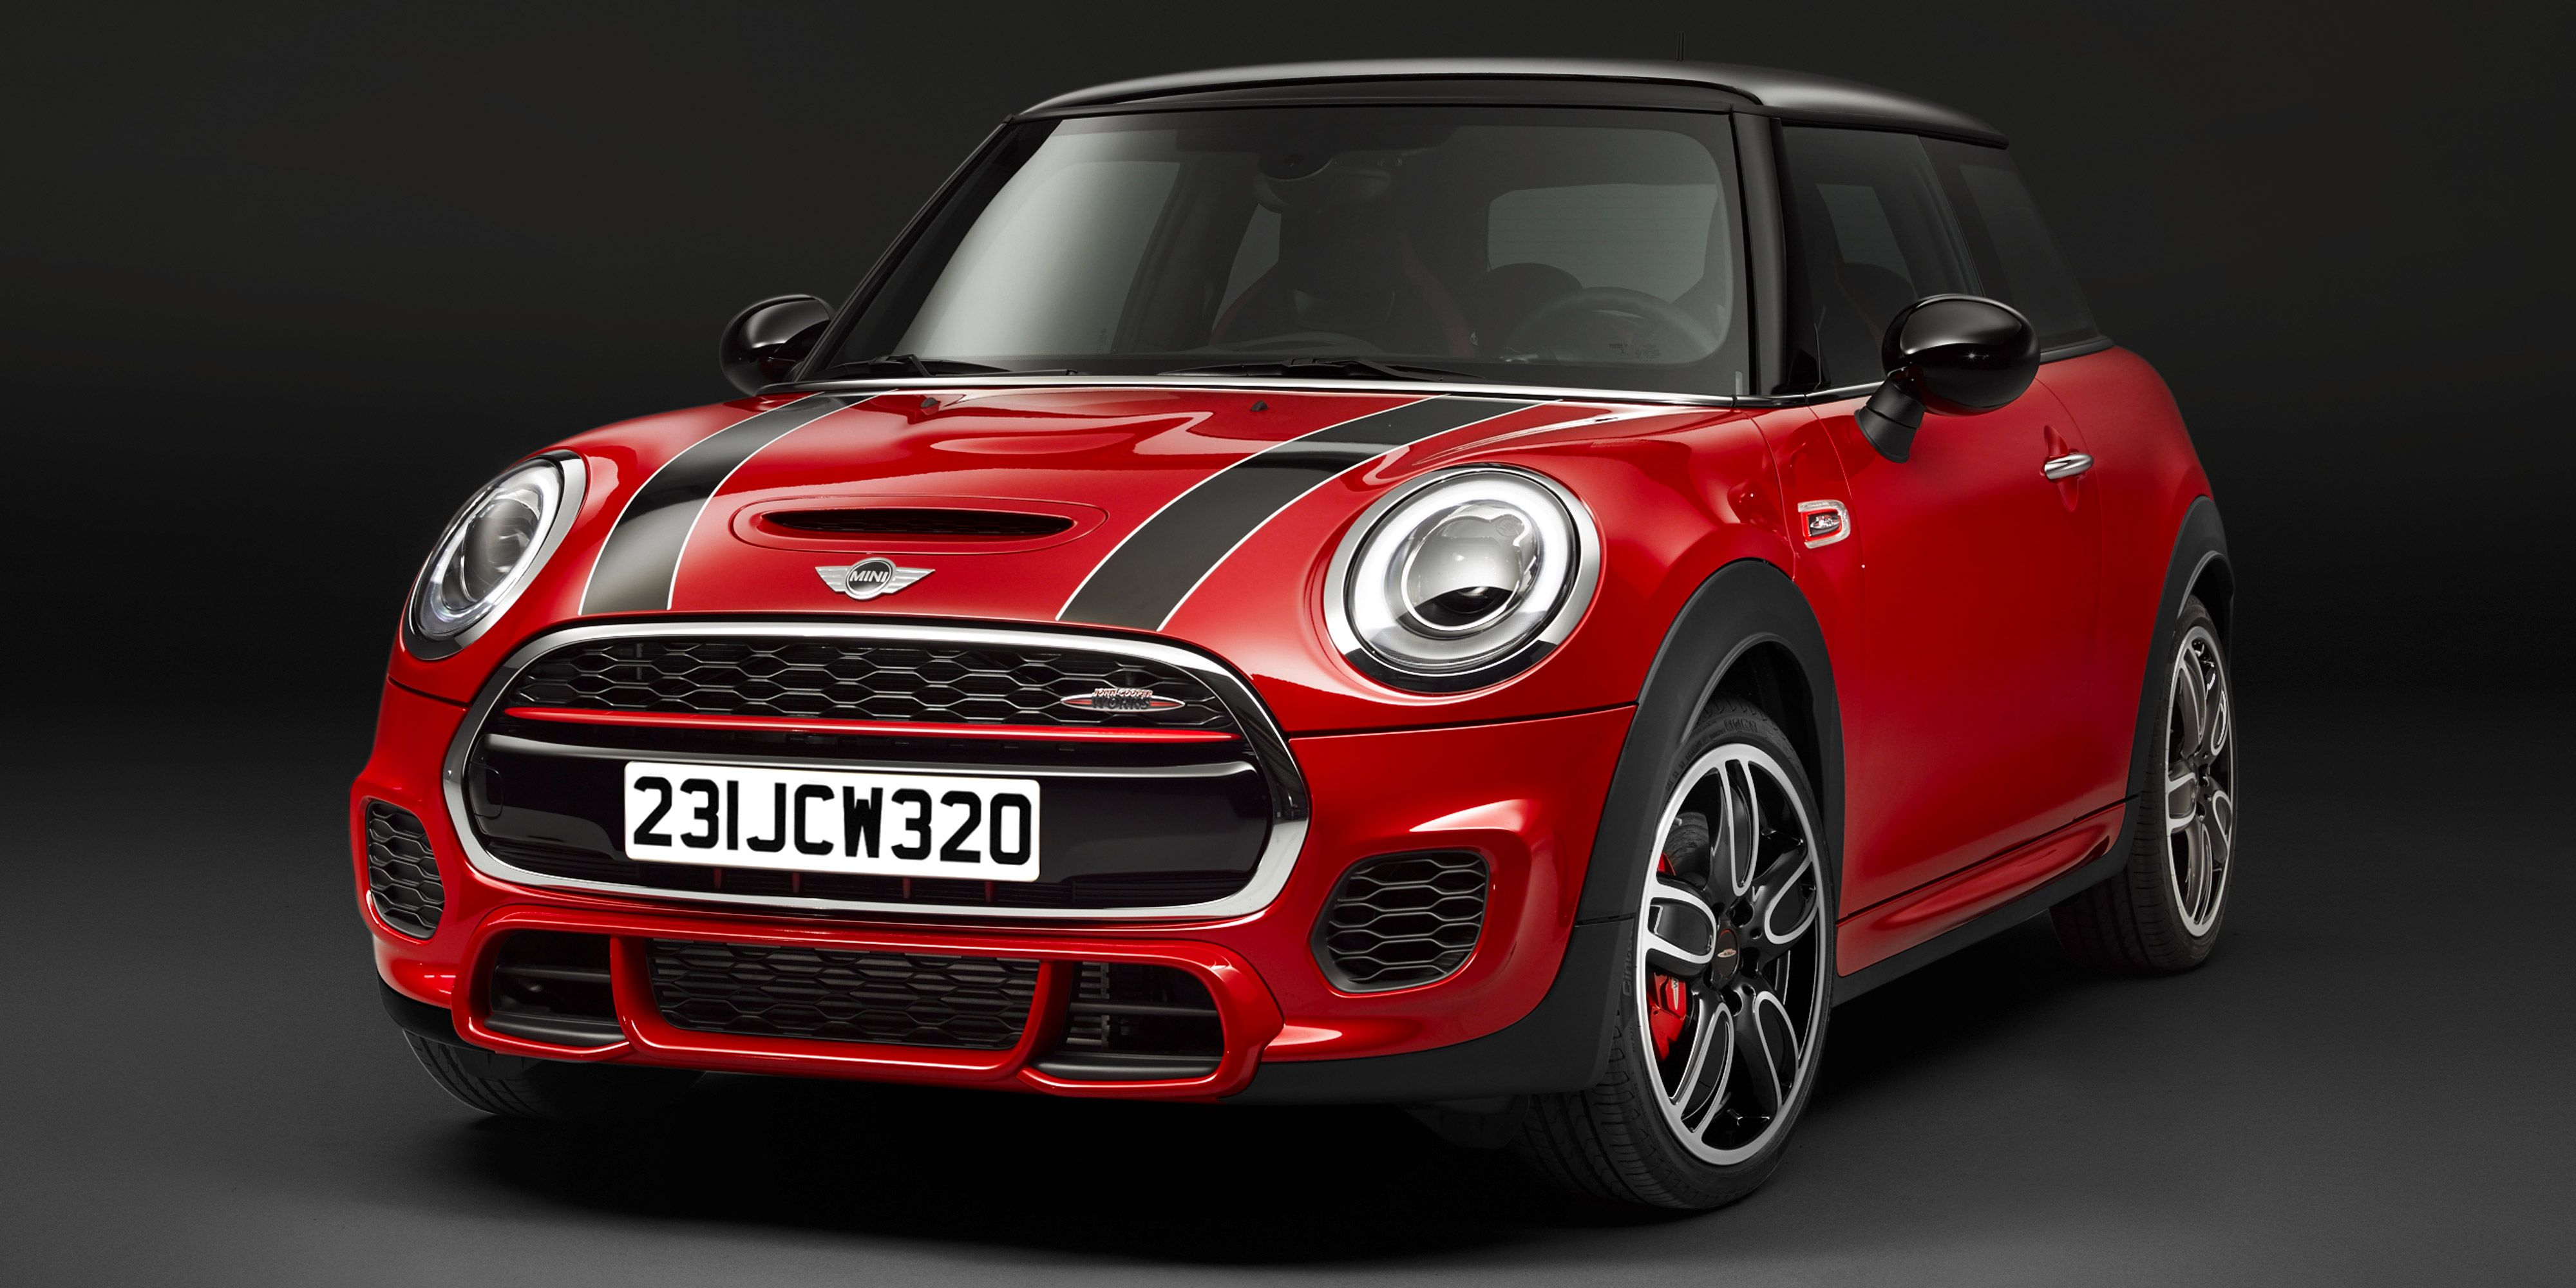 "<p>Even in base form, the Mini Cooper is pretty fun. If you want to have the most fun, you go for <a href=""http://www.roadandtrack.com/new-cars/first-drives/a26202/first-drive-2015-mini-john-cooper-works-hardtop/"" target=""_blank"">the John Cooper Works version</a>. It's both the most powerful and the fastest car Mini has ever built. Other than the GTI, it's also probably the most grown up of all the cars on this list. </p>"